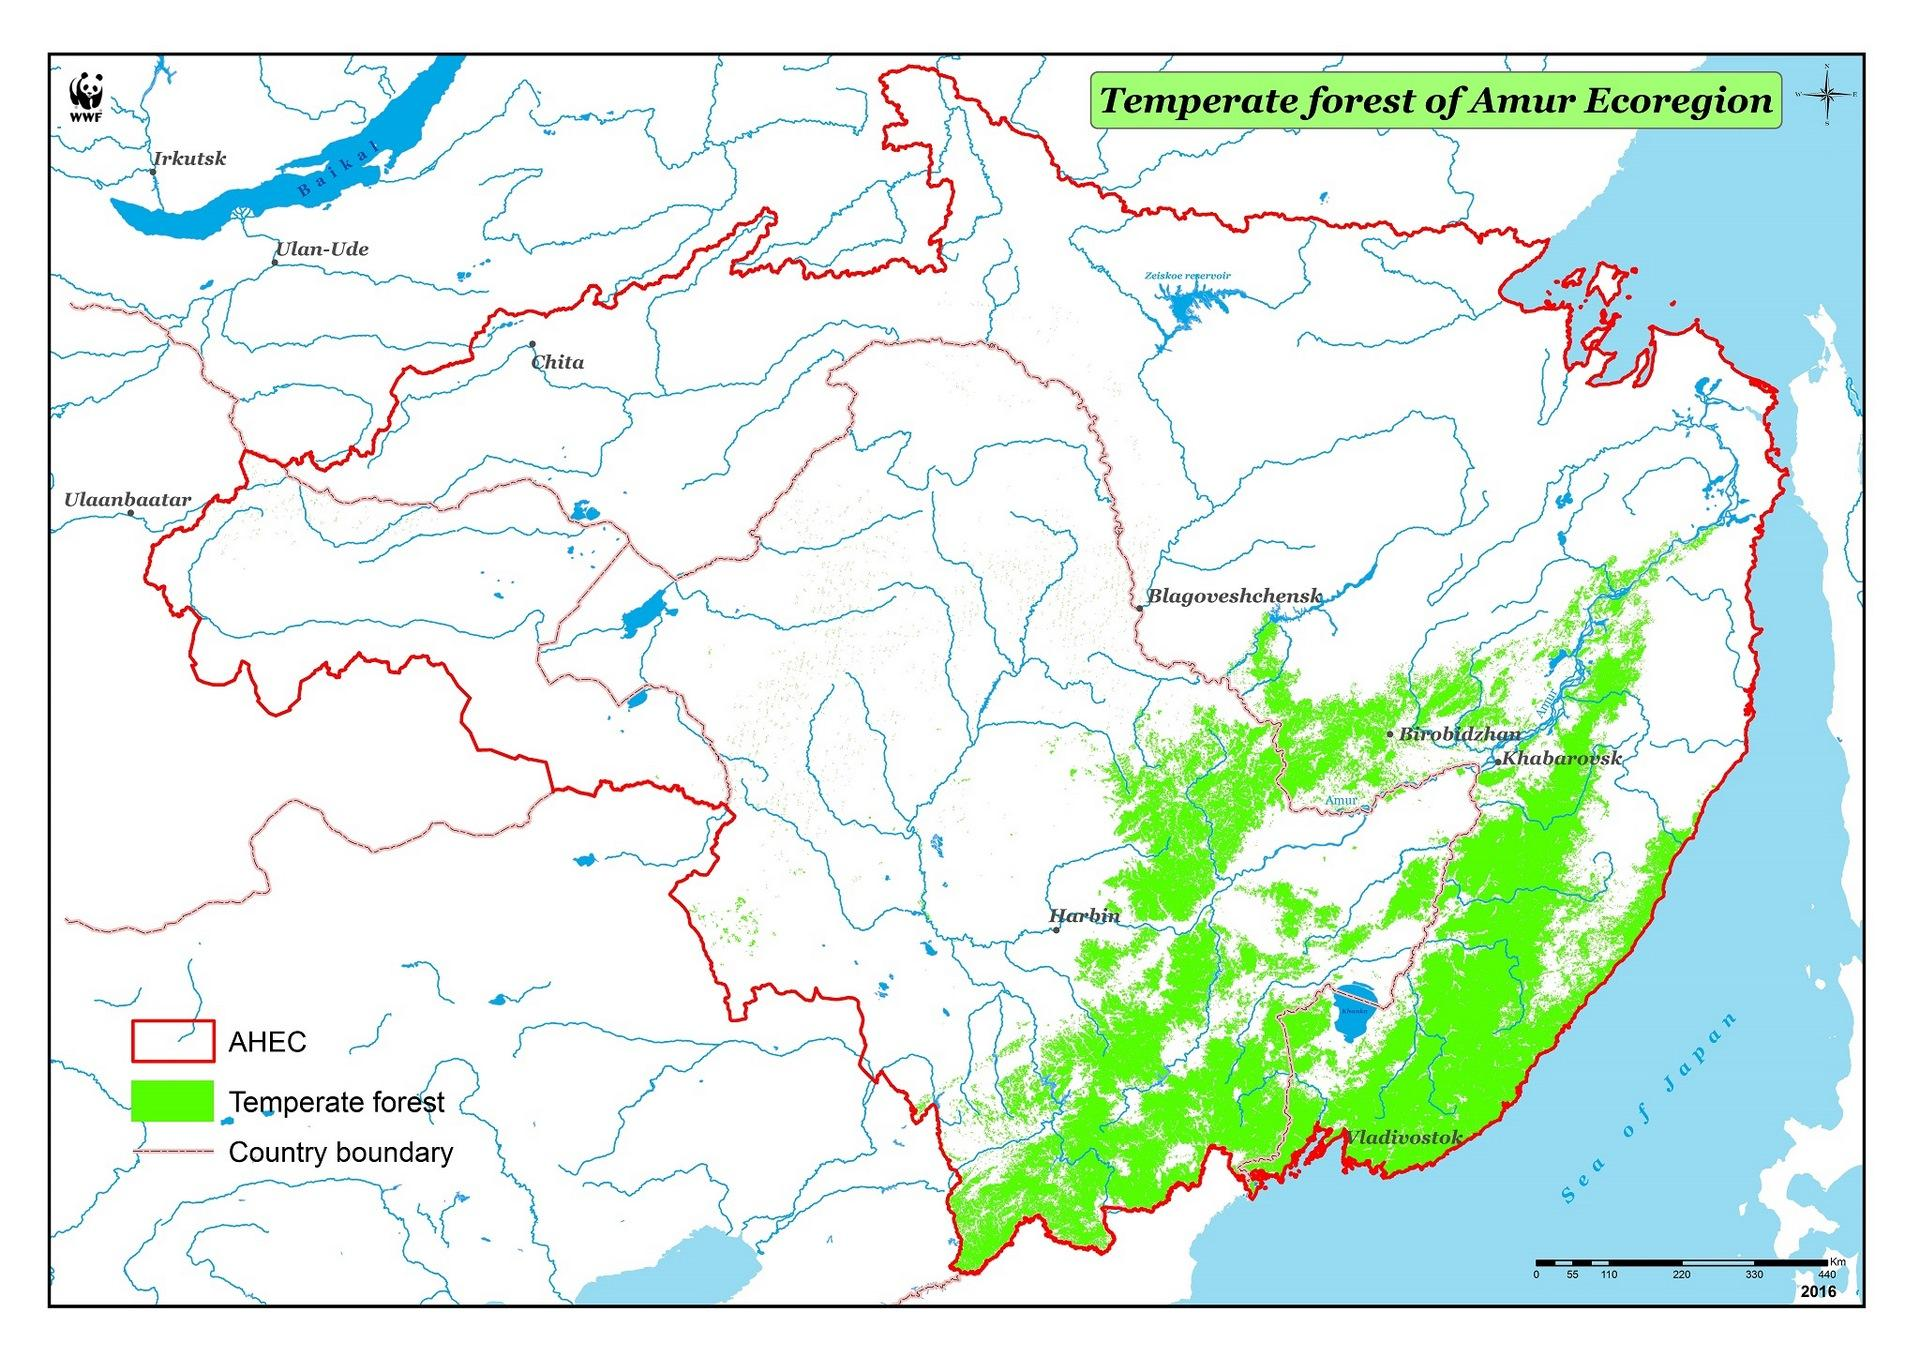 Map of the temperate forests biom (AHEC)